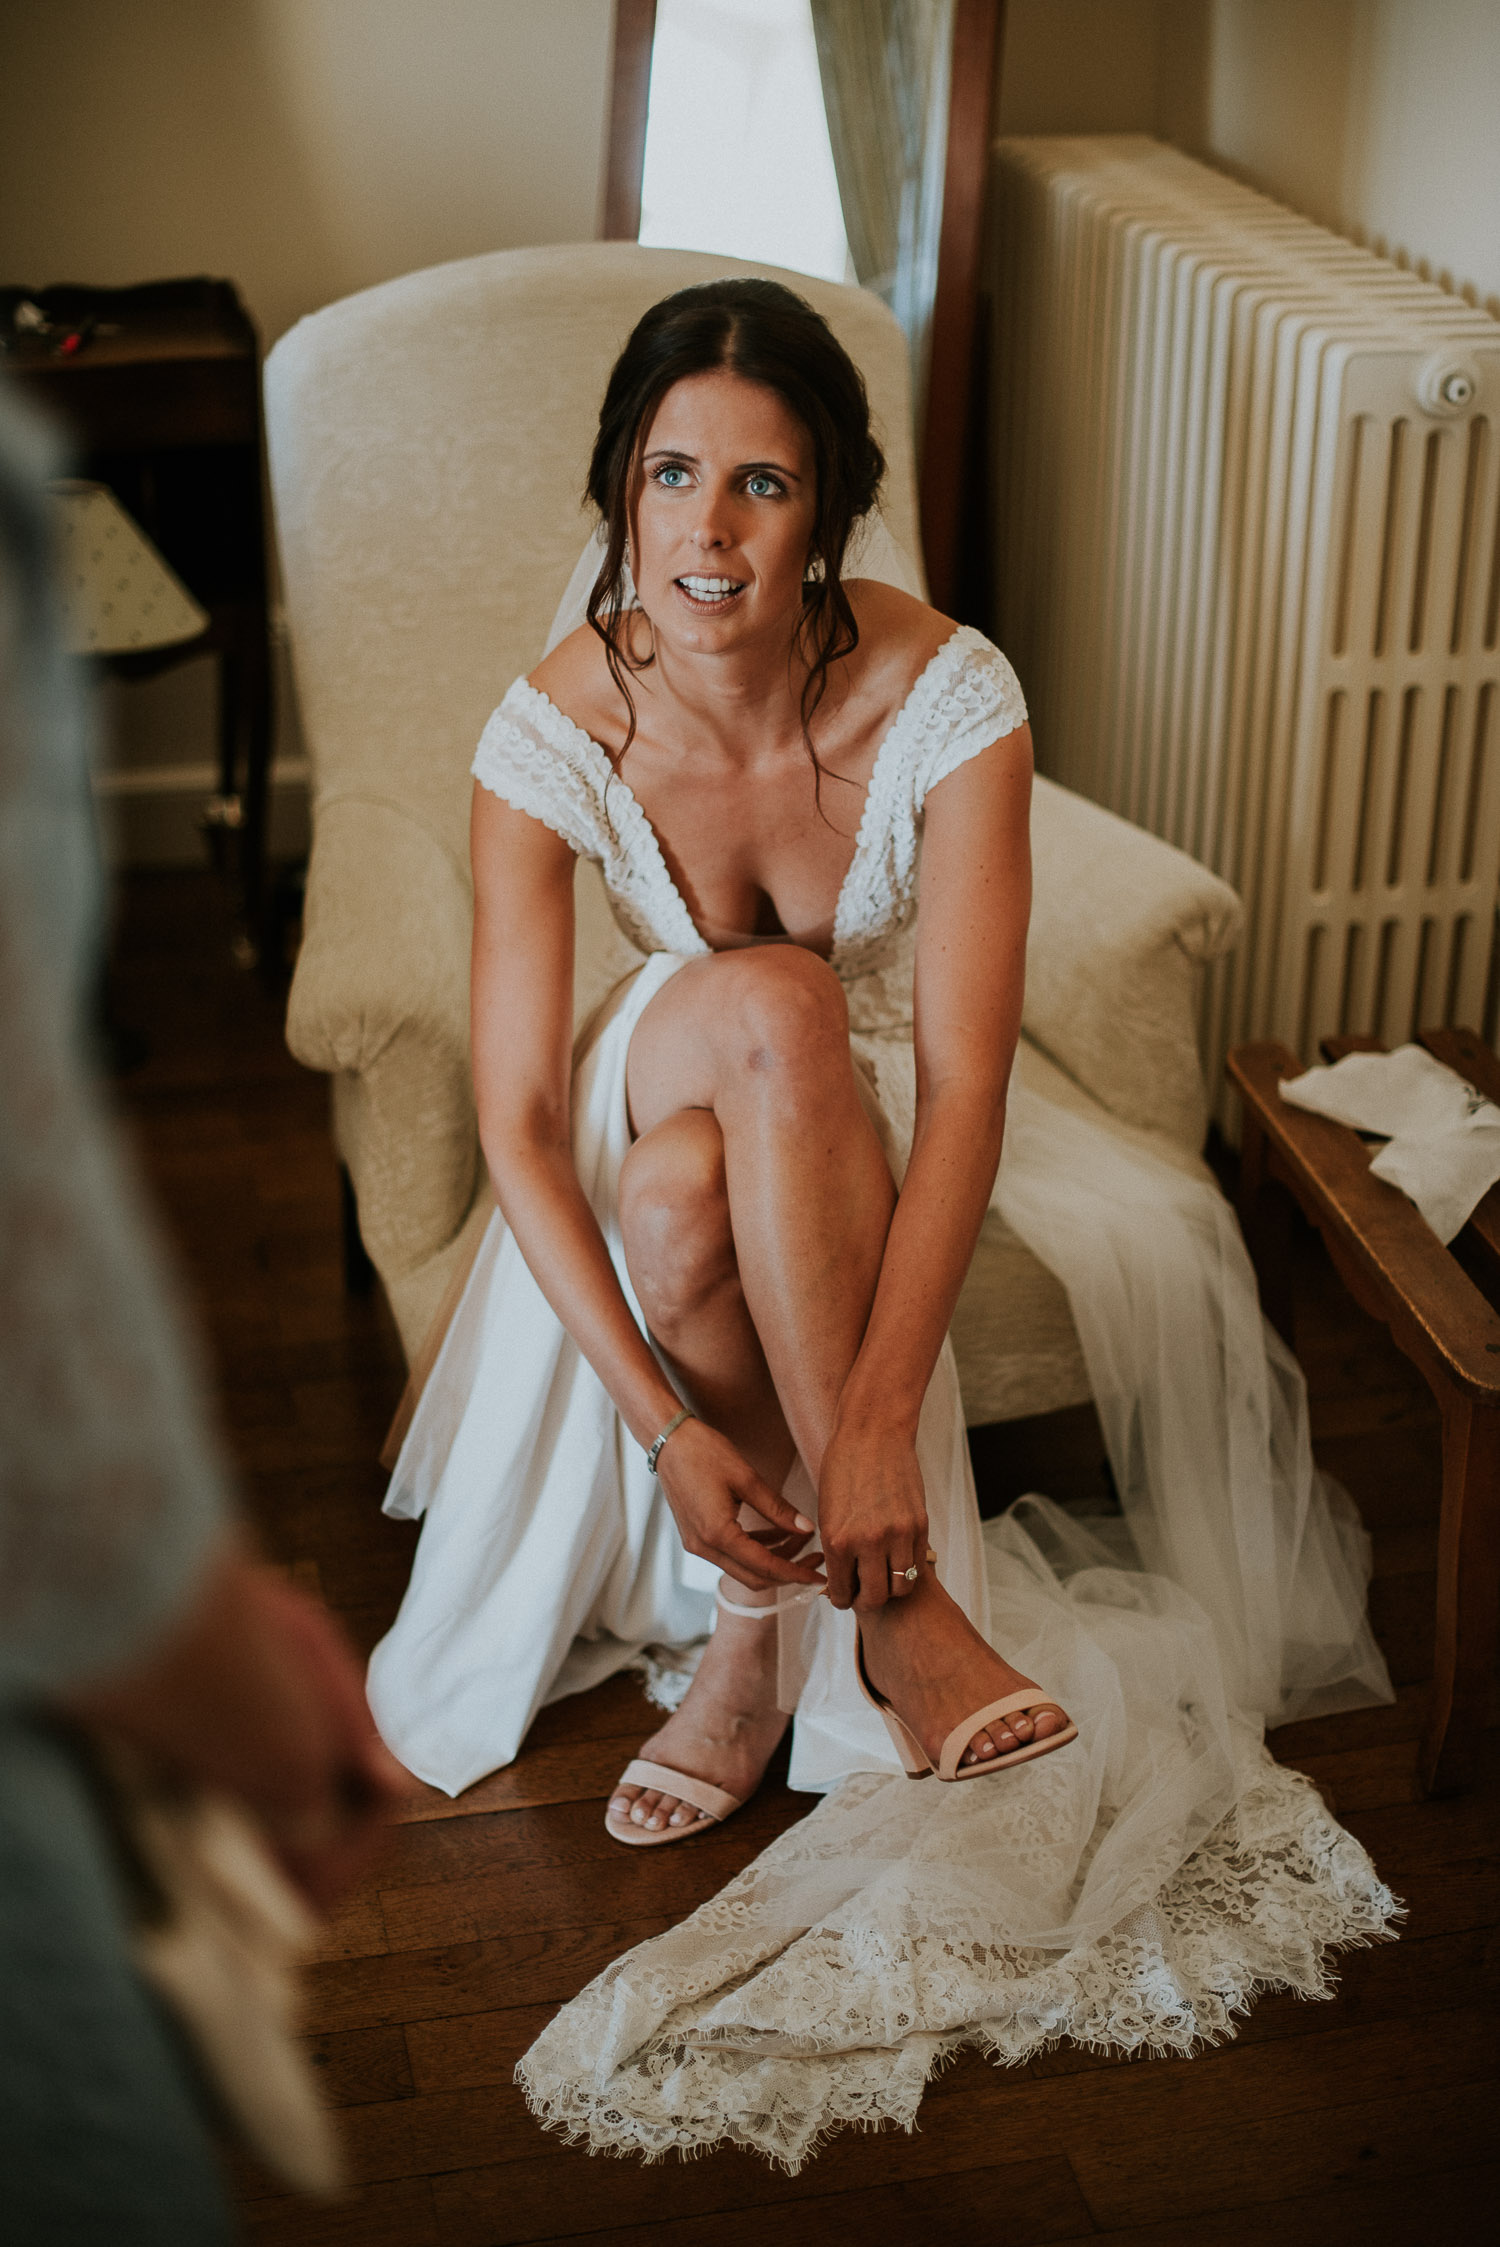 bergerac_wedding_katy_webb_photography_france_UK73